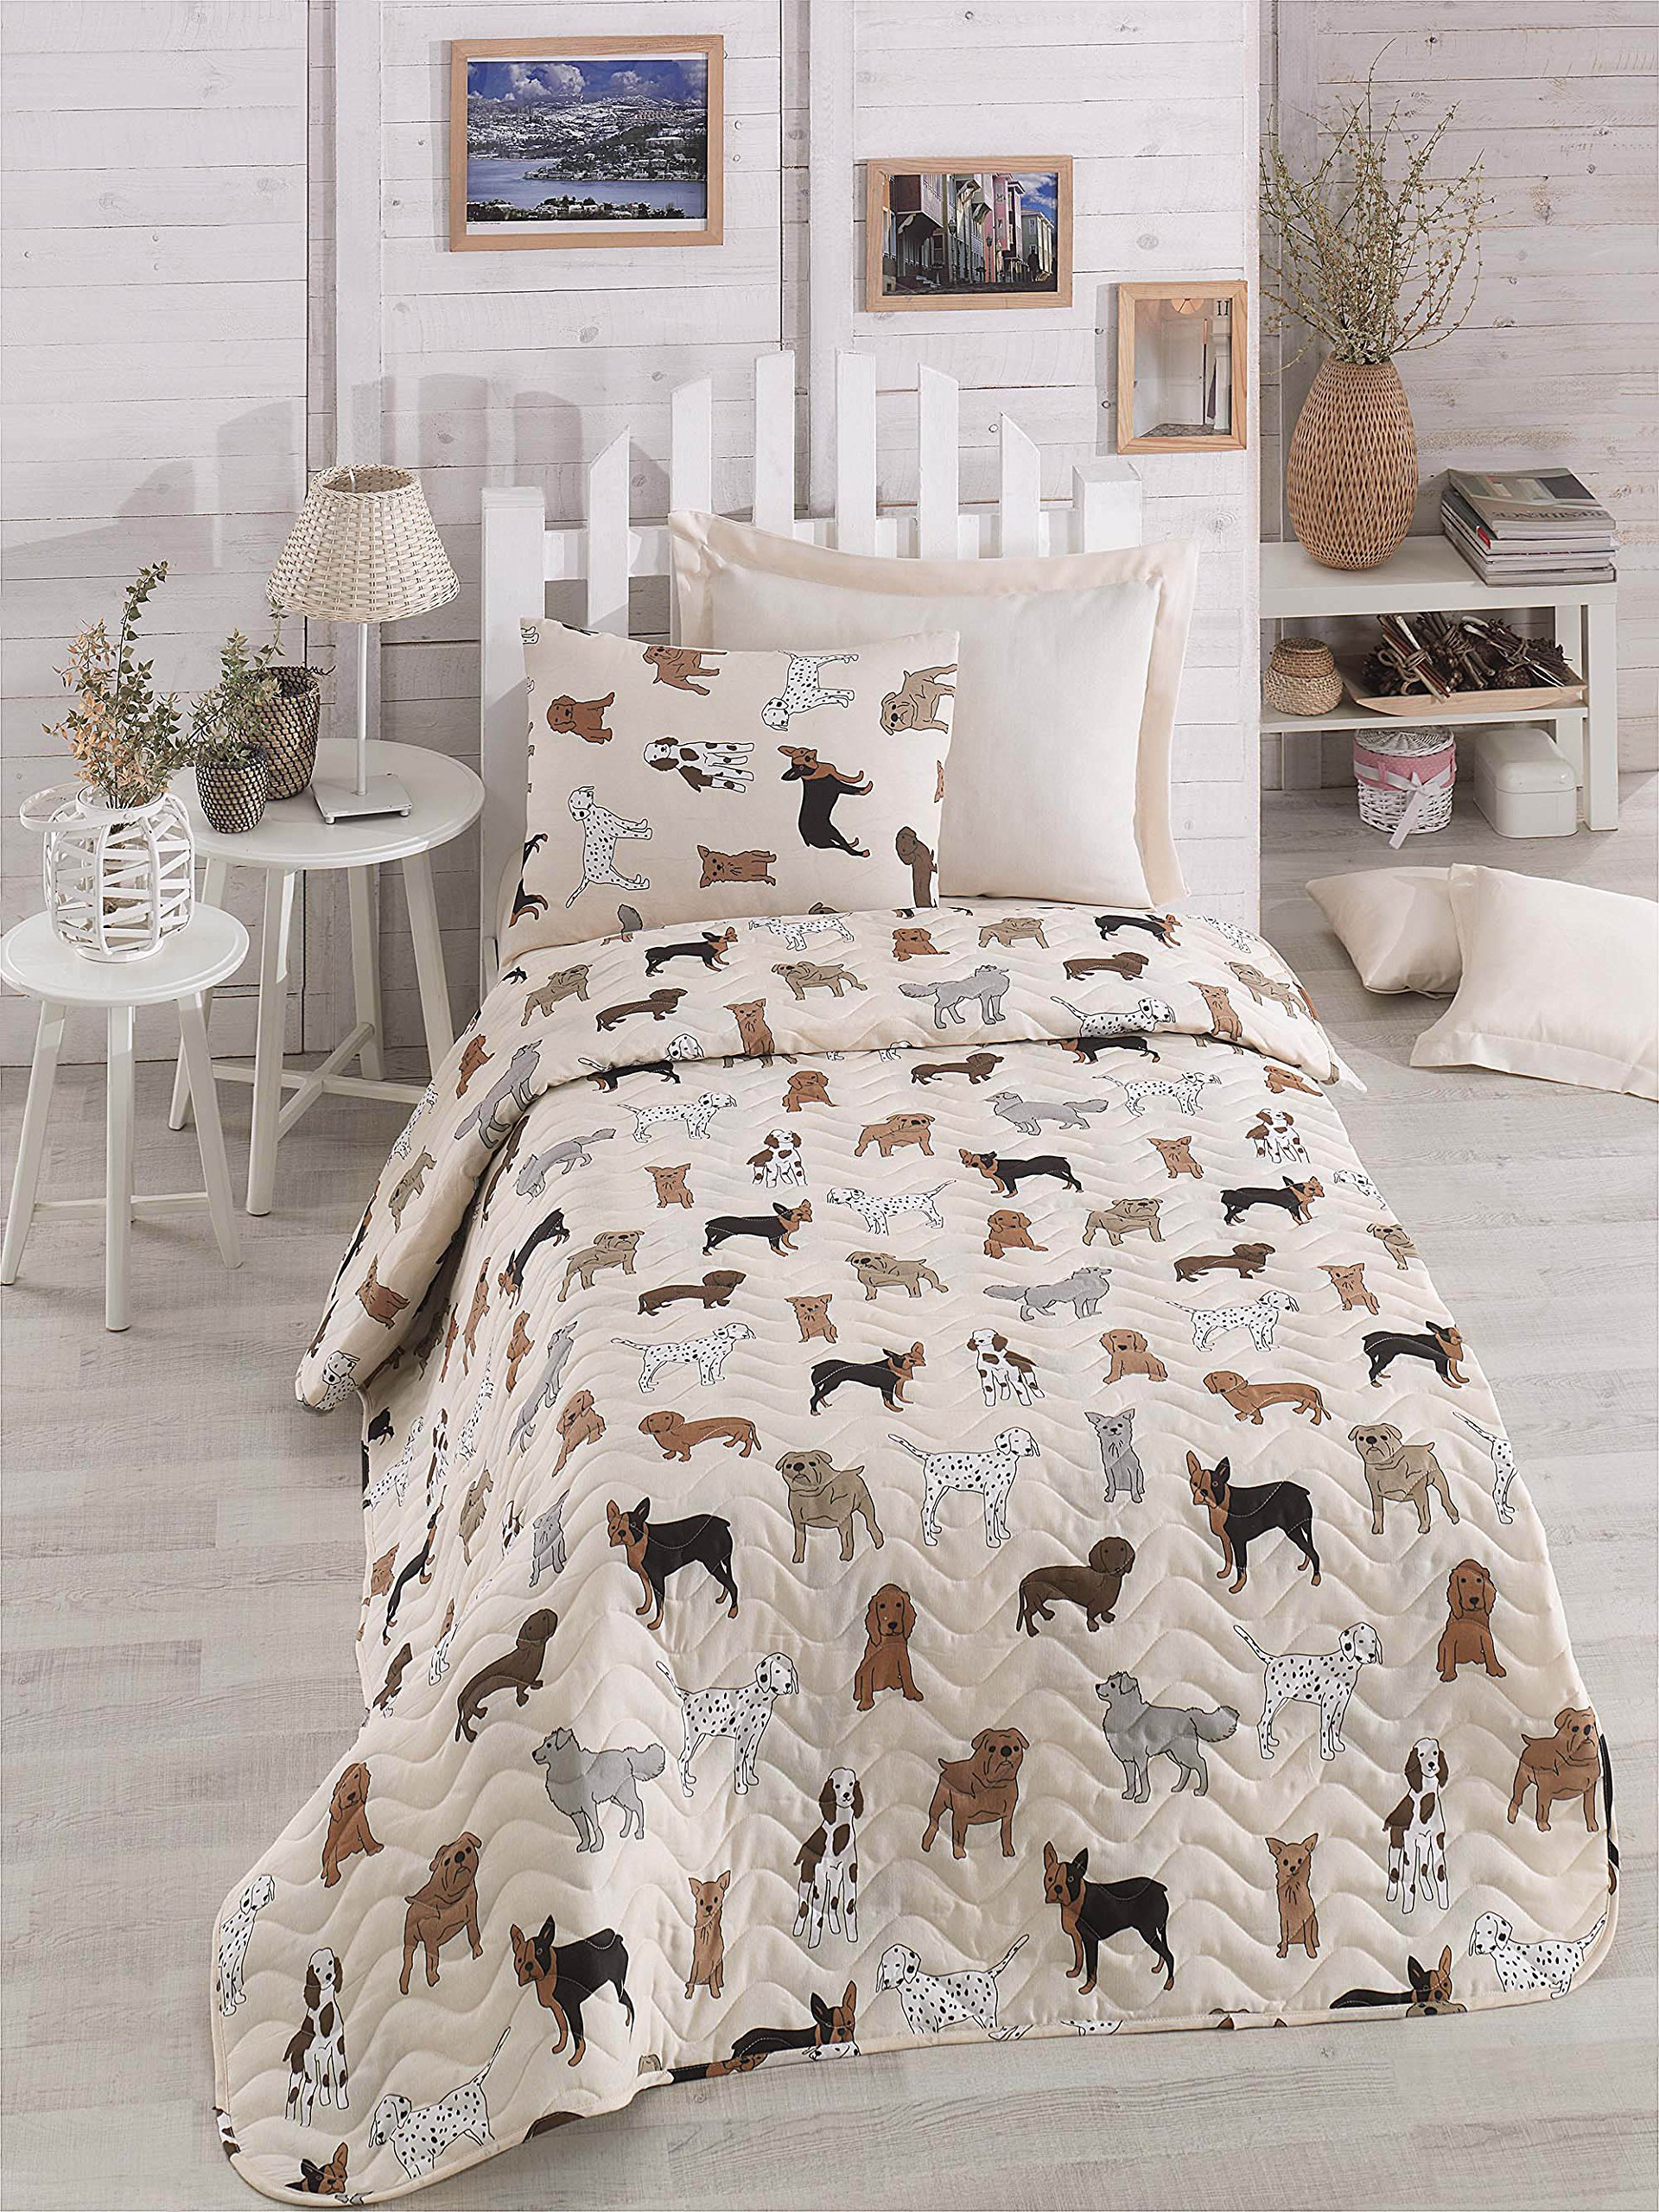 DecoMood Animals Dogs Bedding, Single/Twin Size Bedspread/Coverlet Set, Dogs Themed Girls Boys Bedding, 2 PCS,